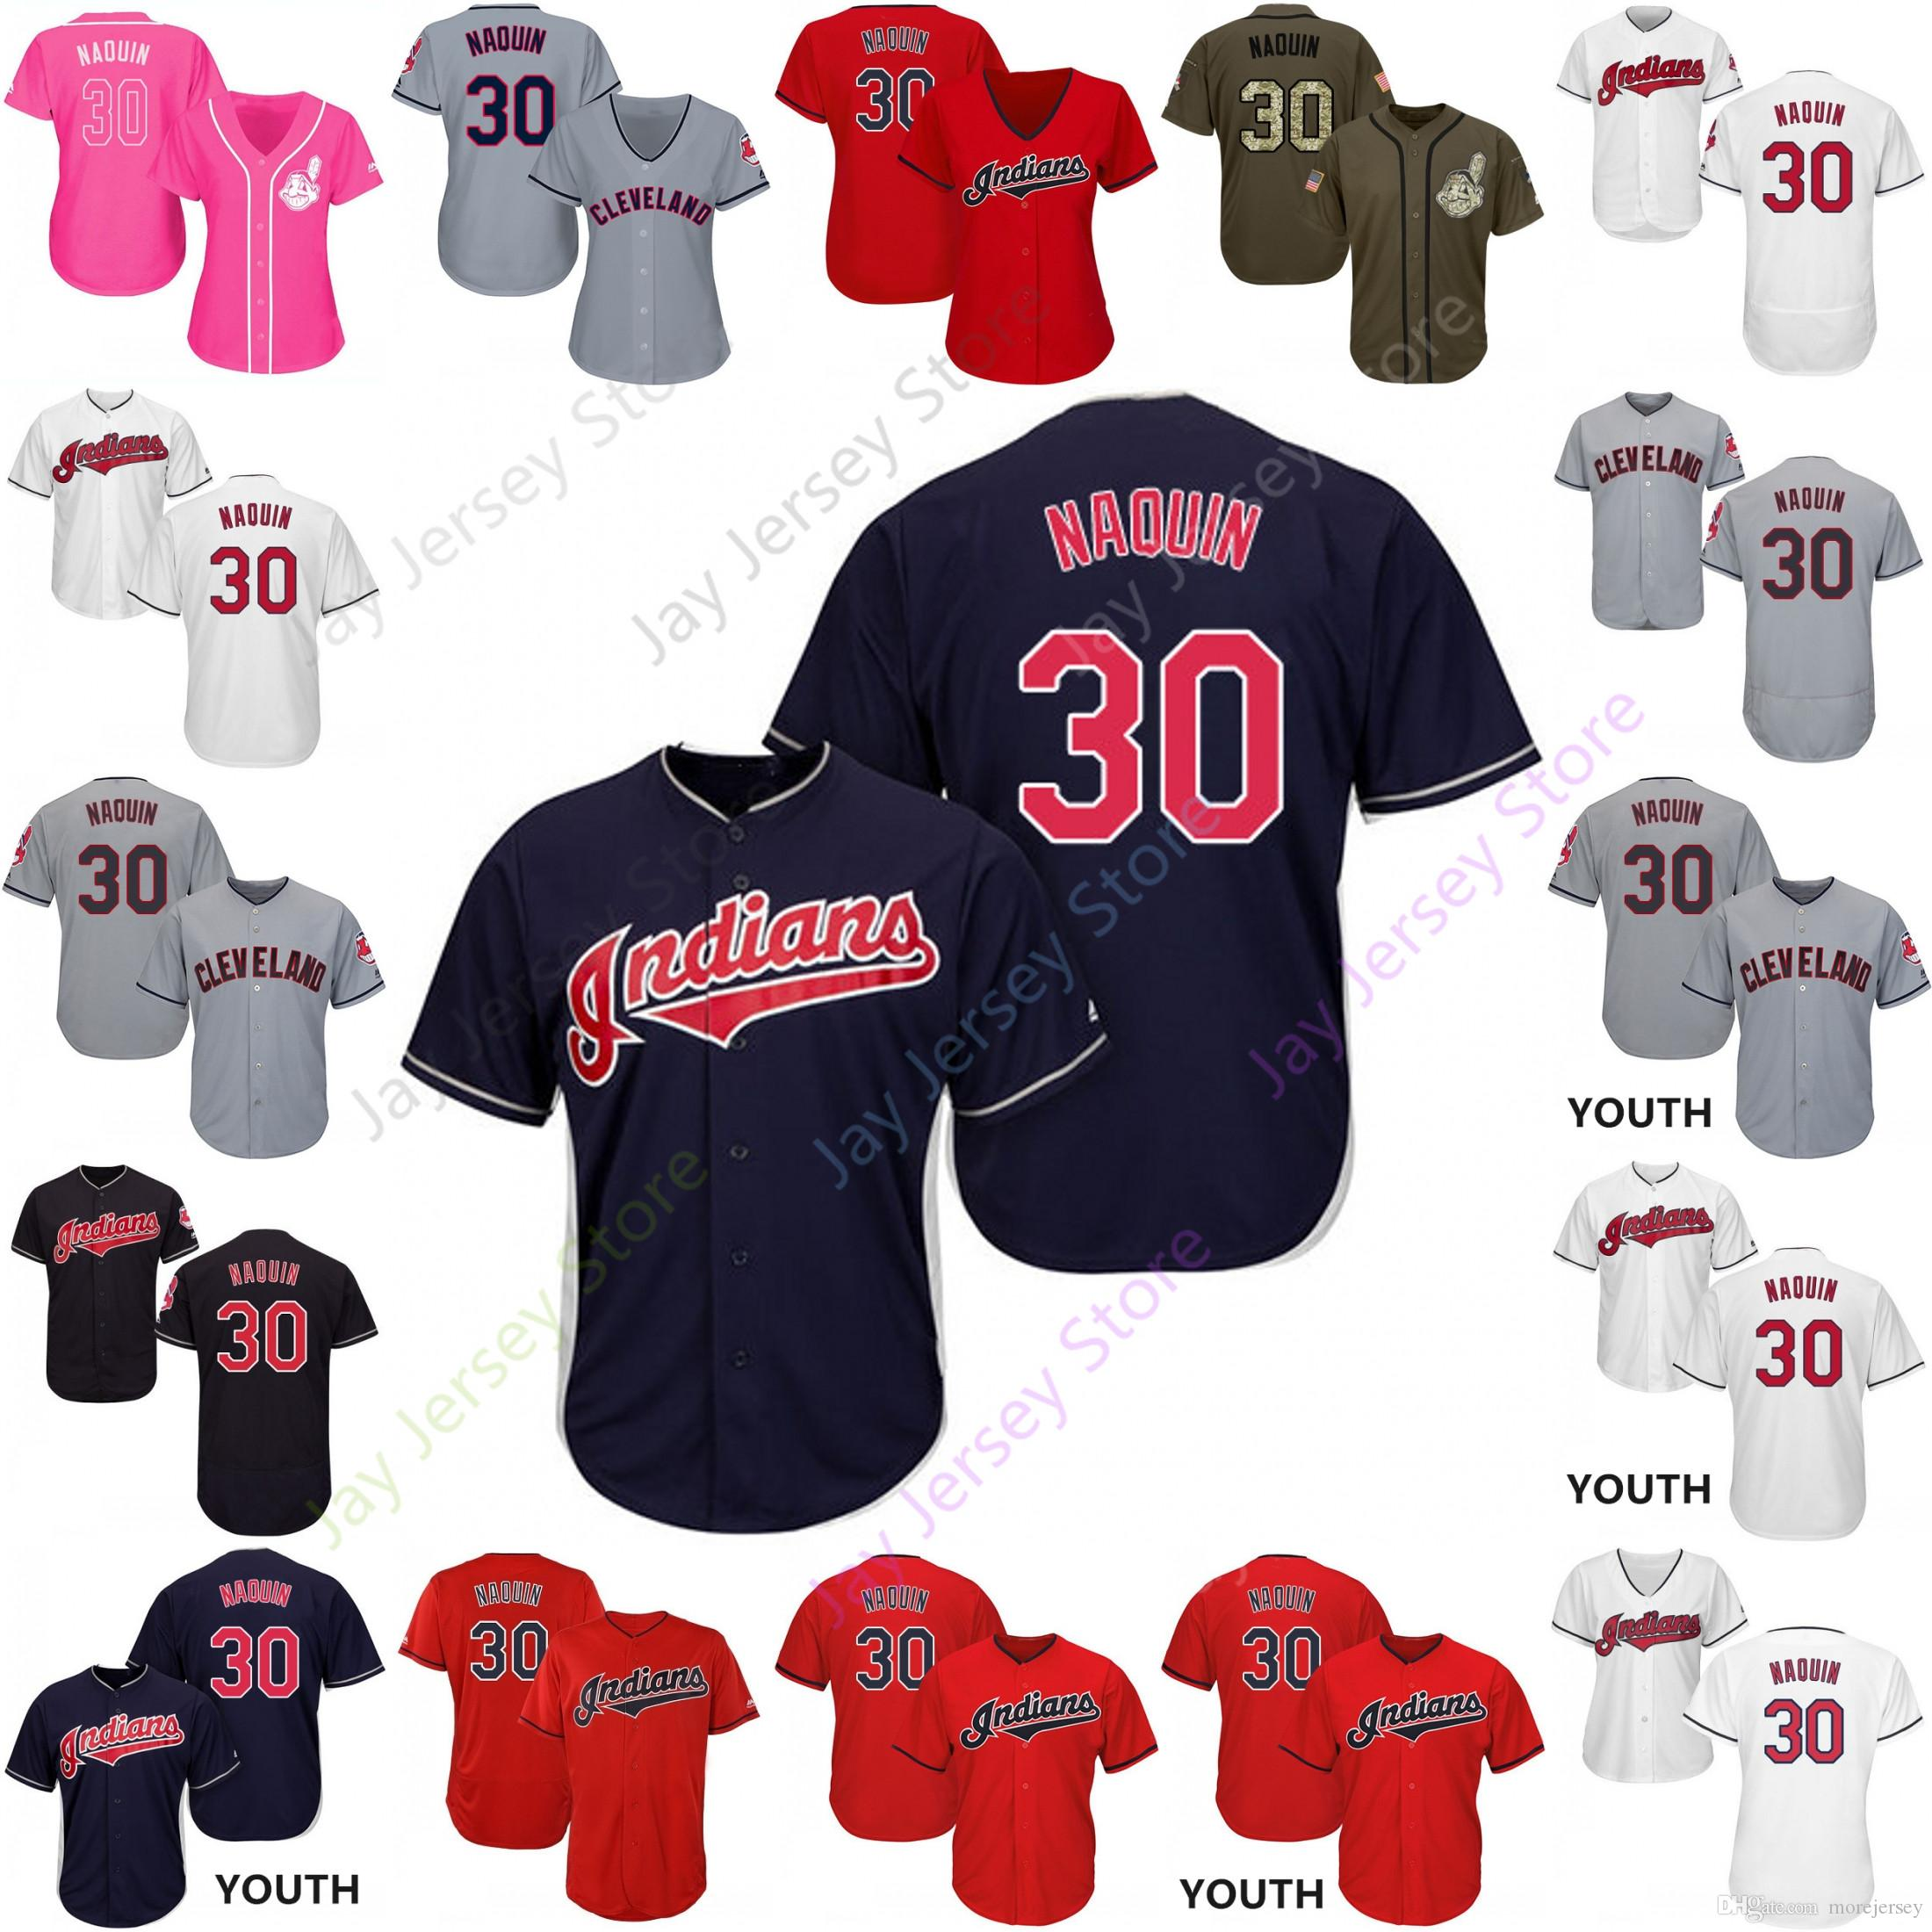 online retailer 9ee07 07fb7 2019 Cleveland 30 Tyler Naquin Jersey Indians Jerseys Cool Base Flexbase  Home Away White Black Red Grey Pullover Button Men Women Youth